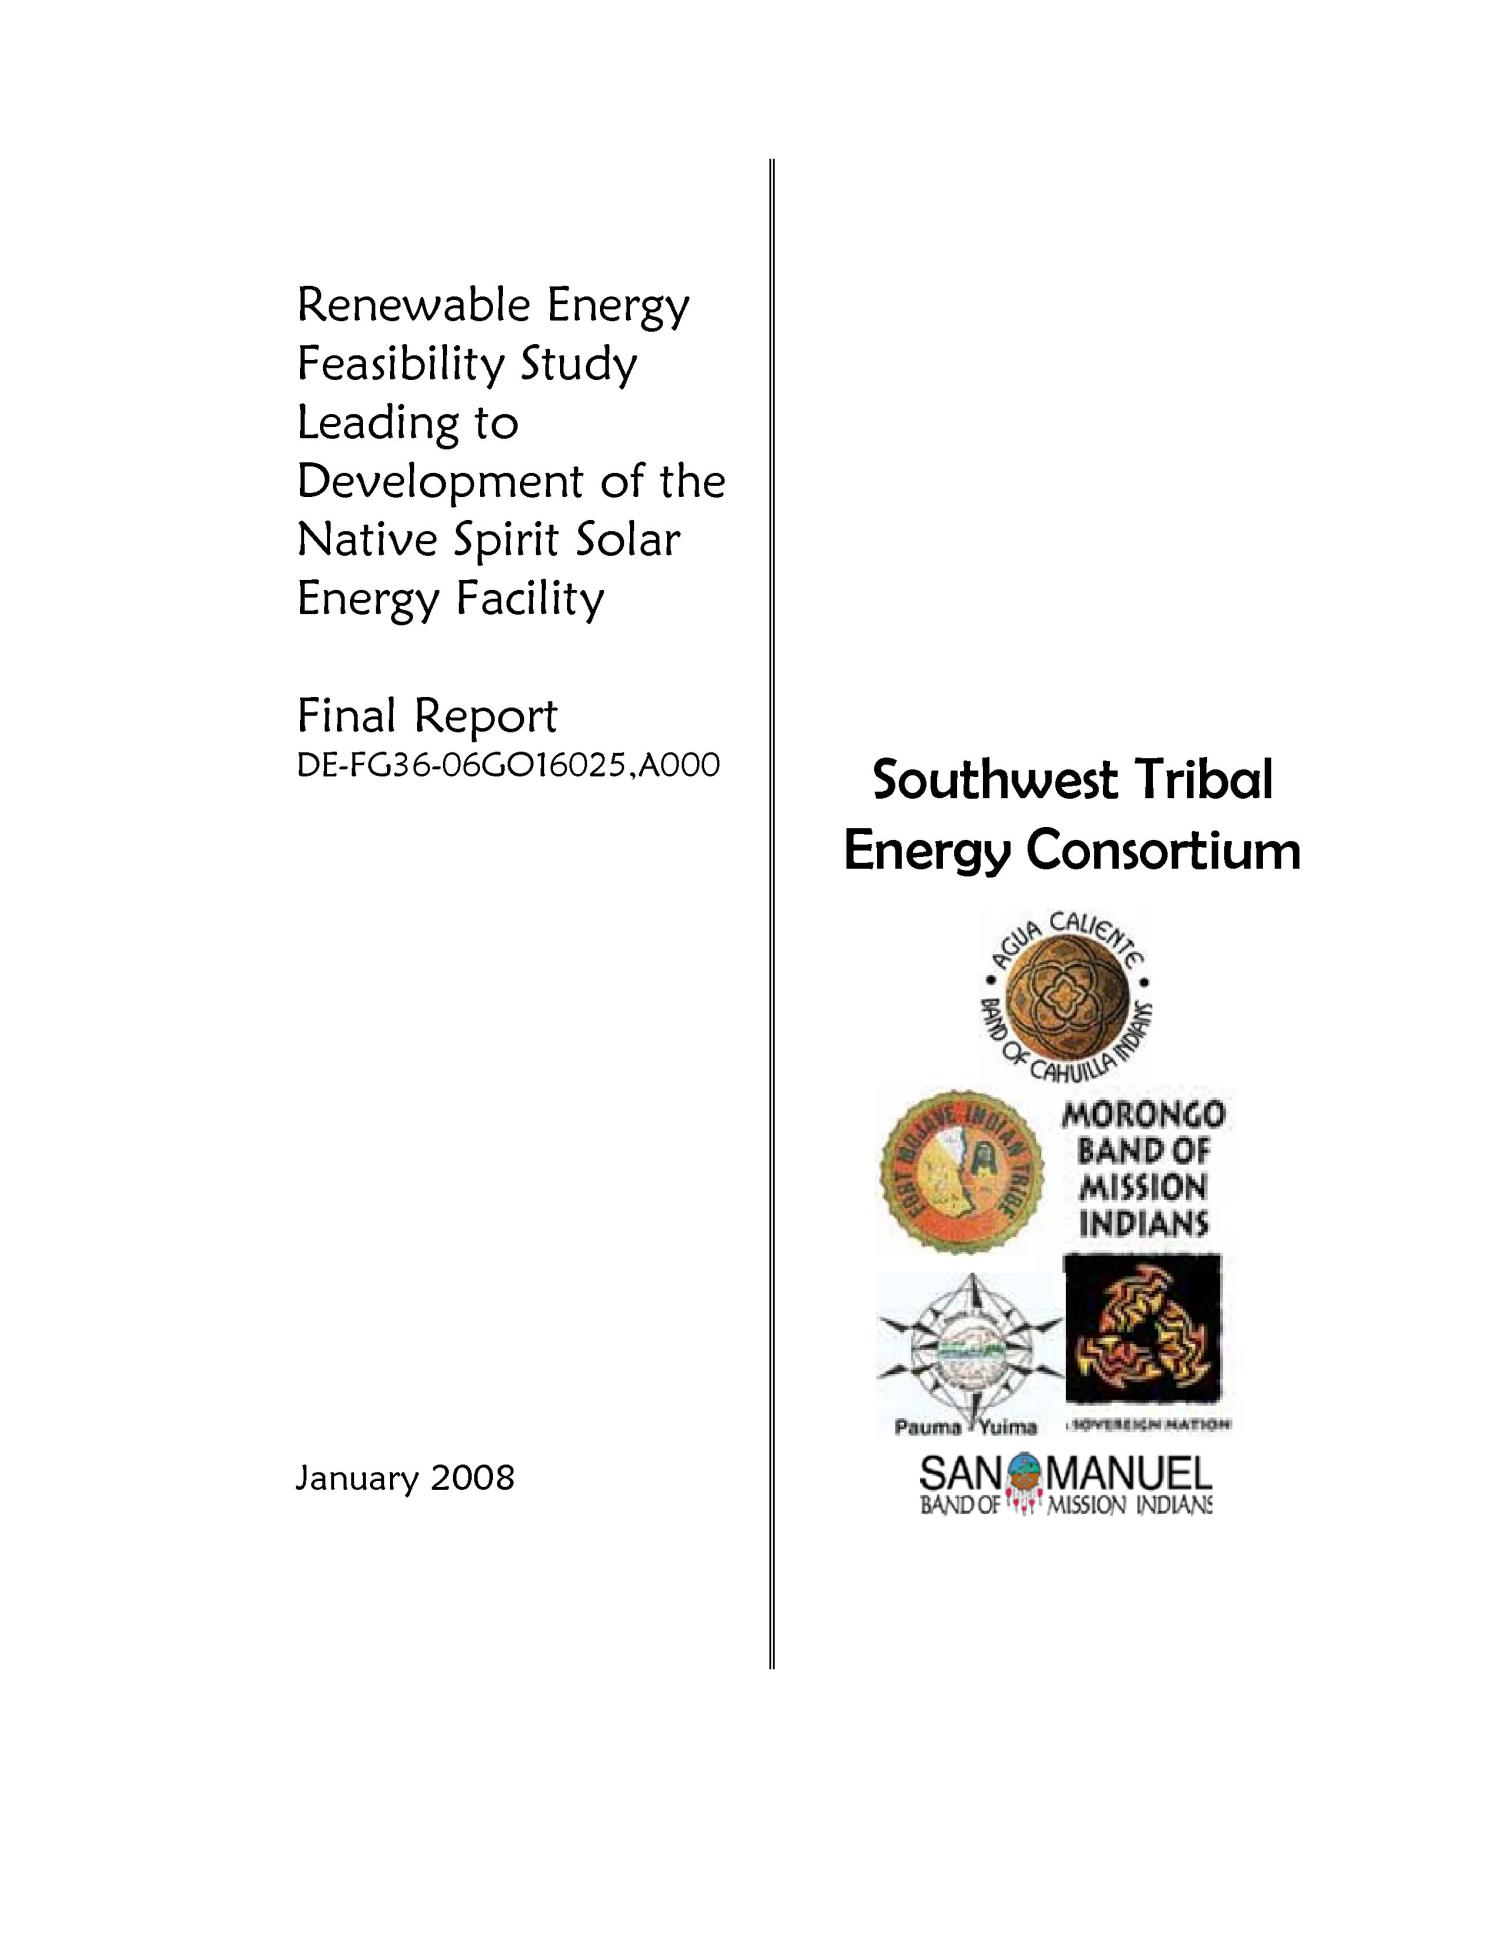 Renewable Energy Feasibility Study Leading to Development of the Native Spirit Solar Energy Facility                                                                                                      [Sequence #]: 1 of 24